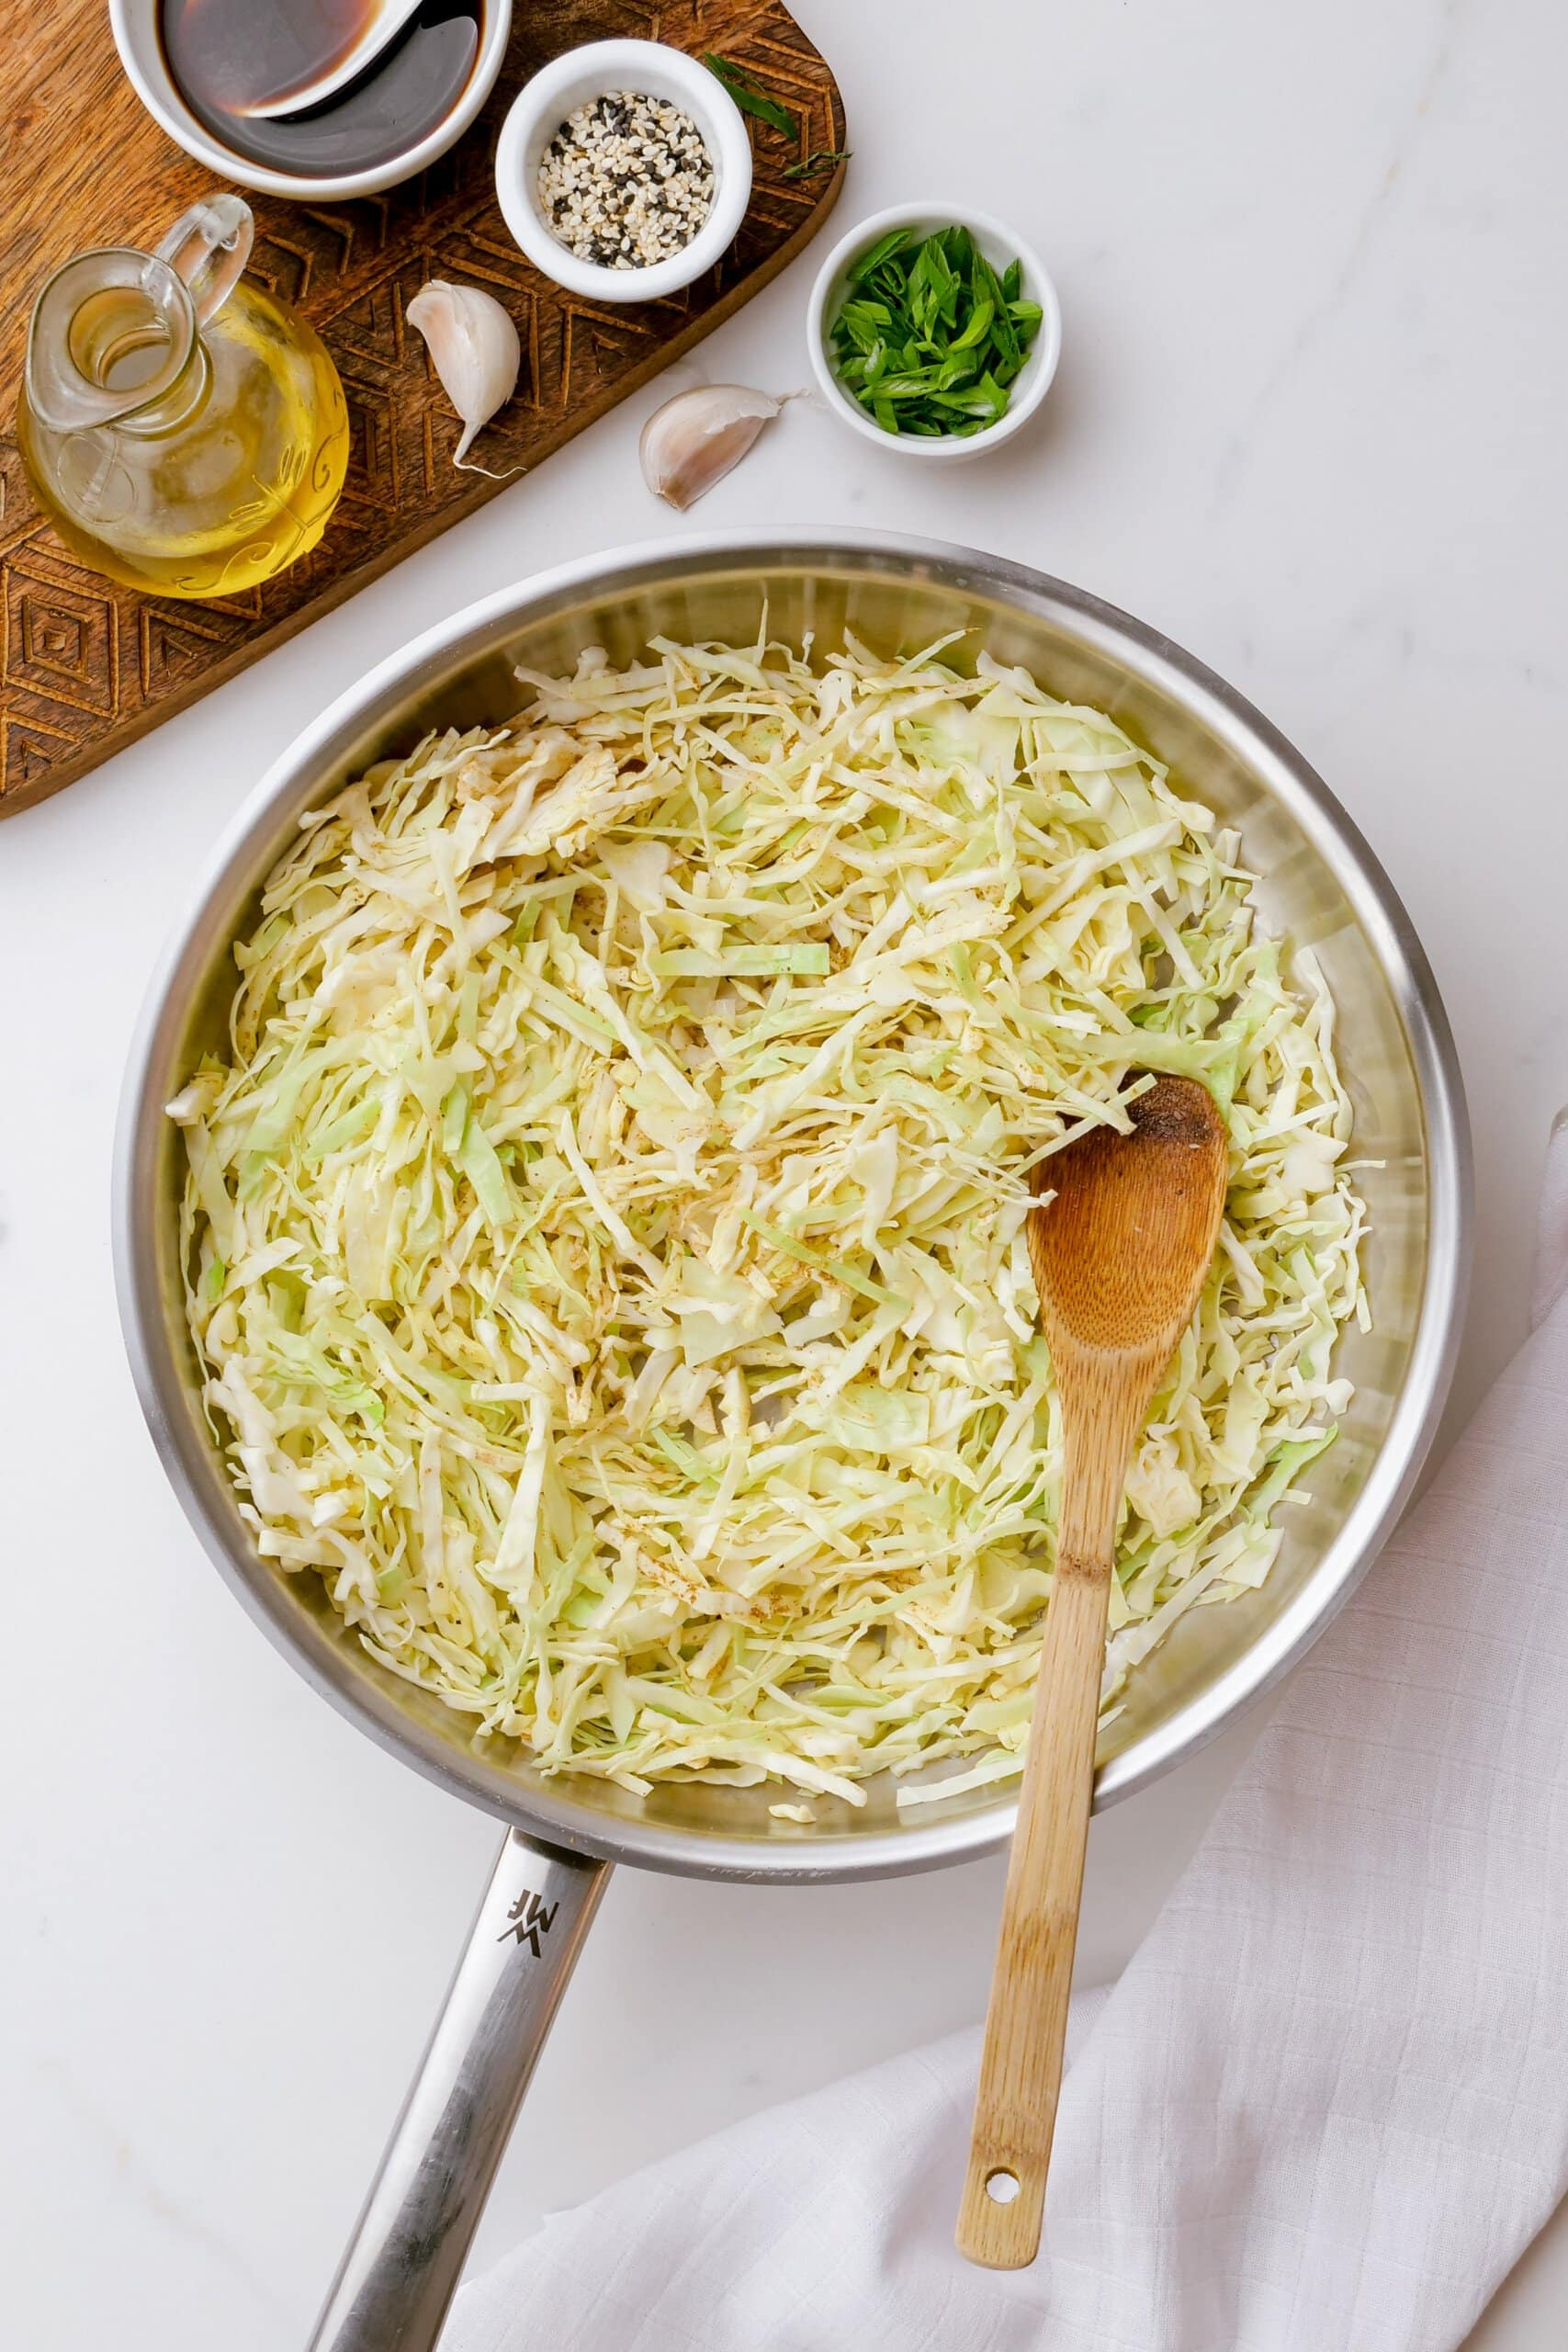 cabbage in a cooking pot with a wooden spoon